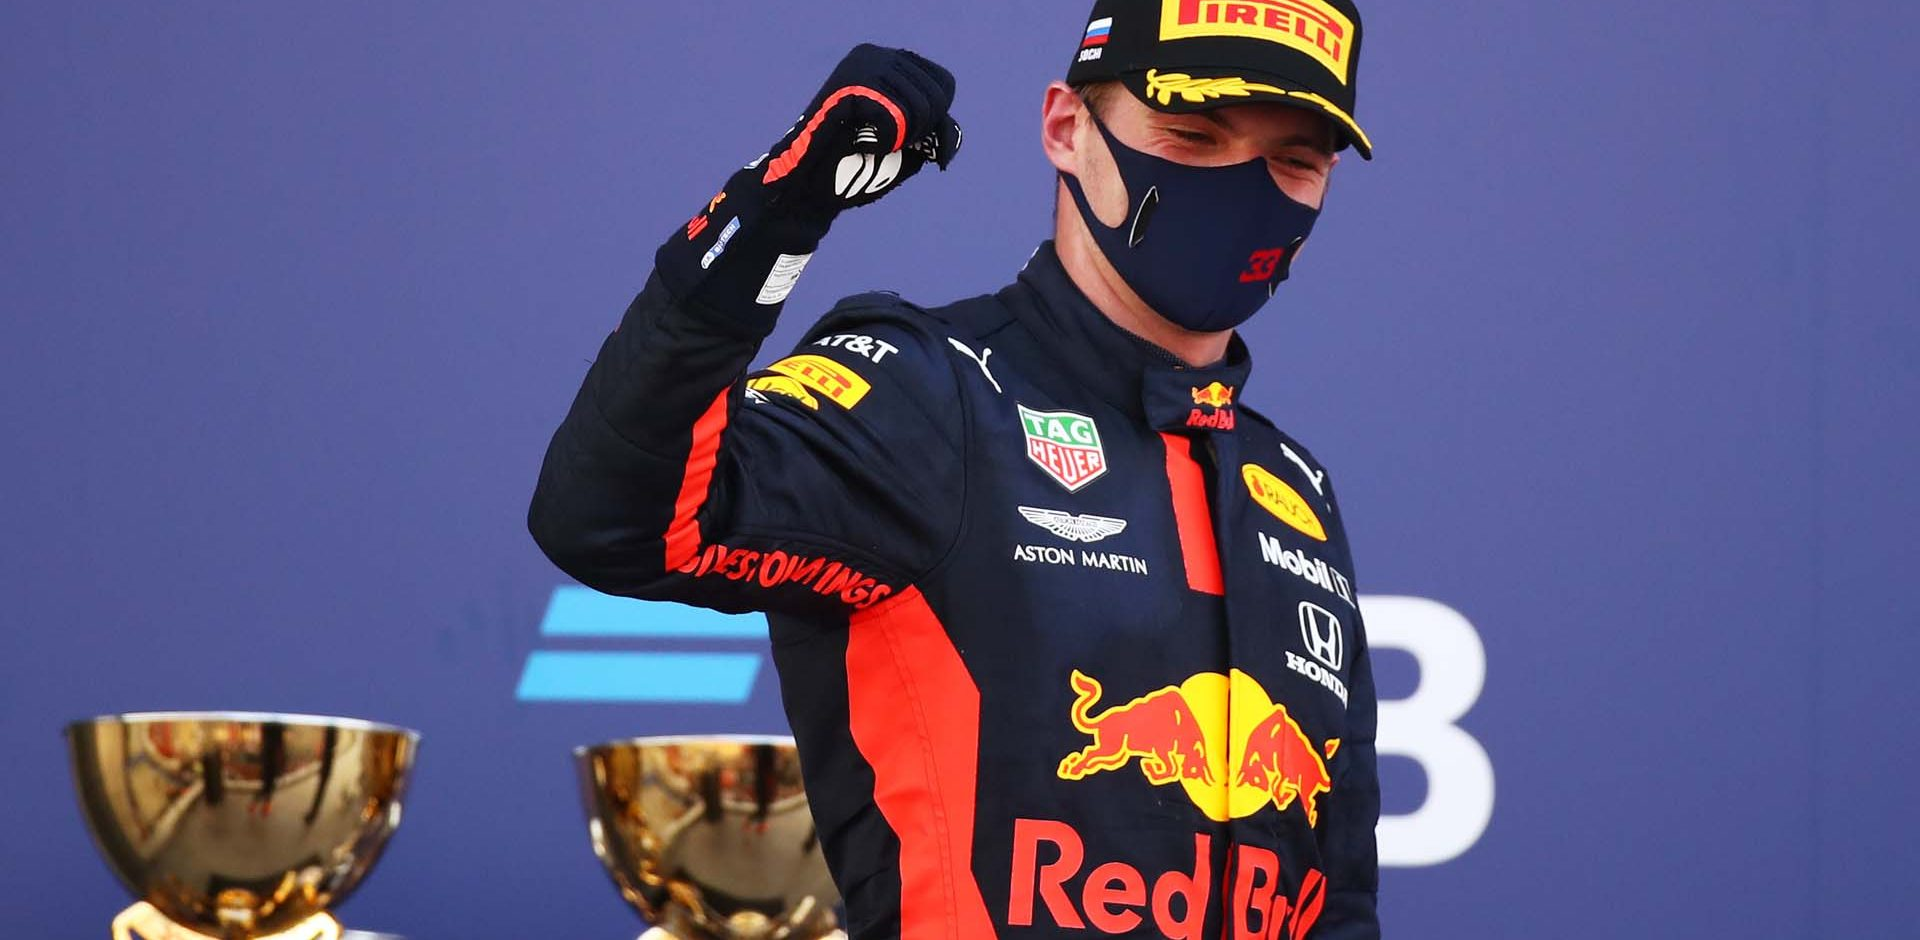 SOCHI, RUSSIA - SEPTEMBER 27: Second placed Max Verstappen of Netherlands and Red Bull Racing celebrates on the podium during the F1 Grand Prix of Russia at Sochi Autodrom on September 27, 2020 in Sochi, Russia. (Photo by Bryn Lennon/Getty Images)